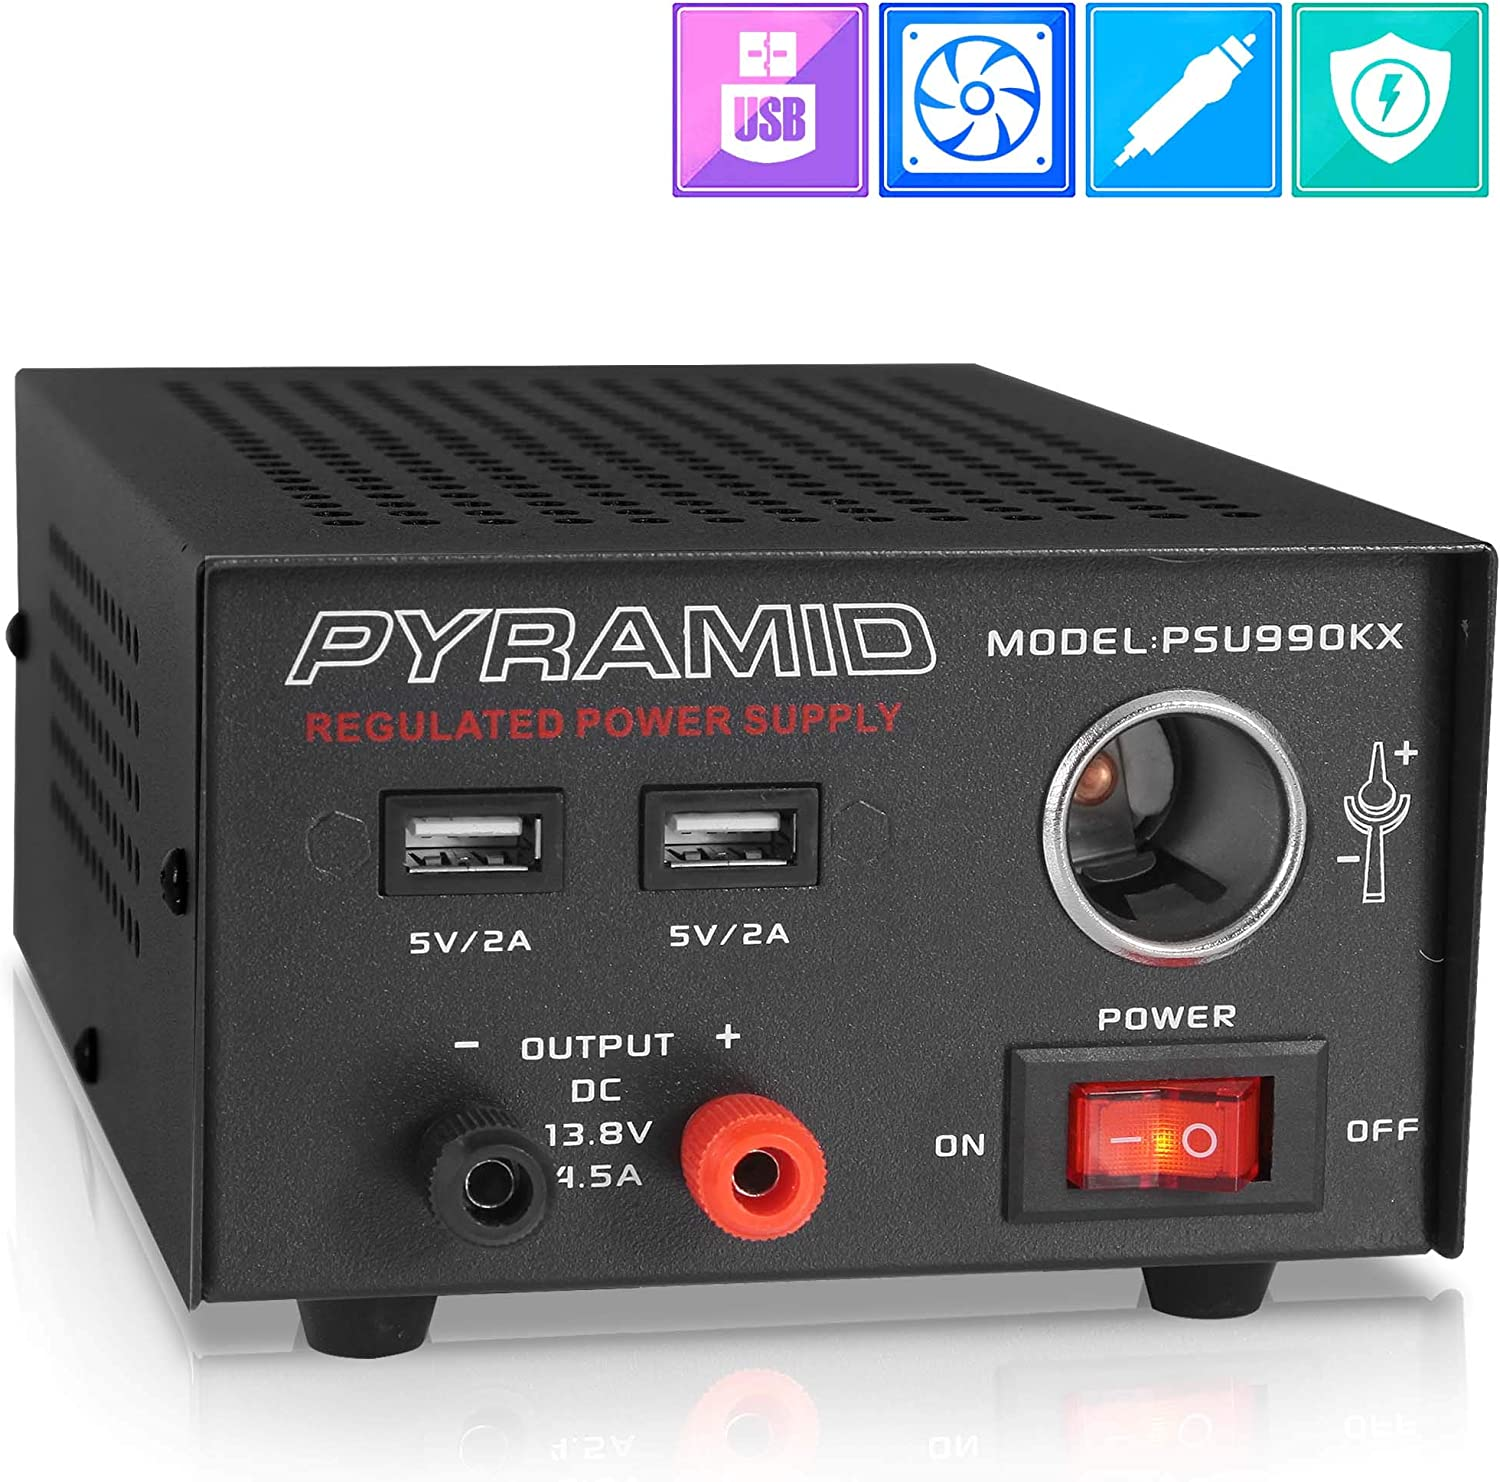 Universal Compact Bench Power Supply - 7 Amp Regulated Home Lab Benchtop AC-DC Converter Power Supply for CB Radio, HAM w/ 13.8 Volt DC 120V AC Supply, Dual USB, Cigarette Lighter - Pyramid PSU990KX